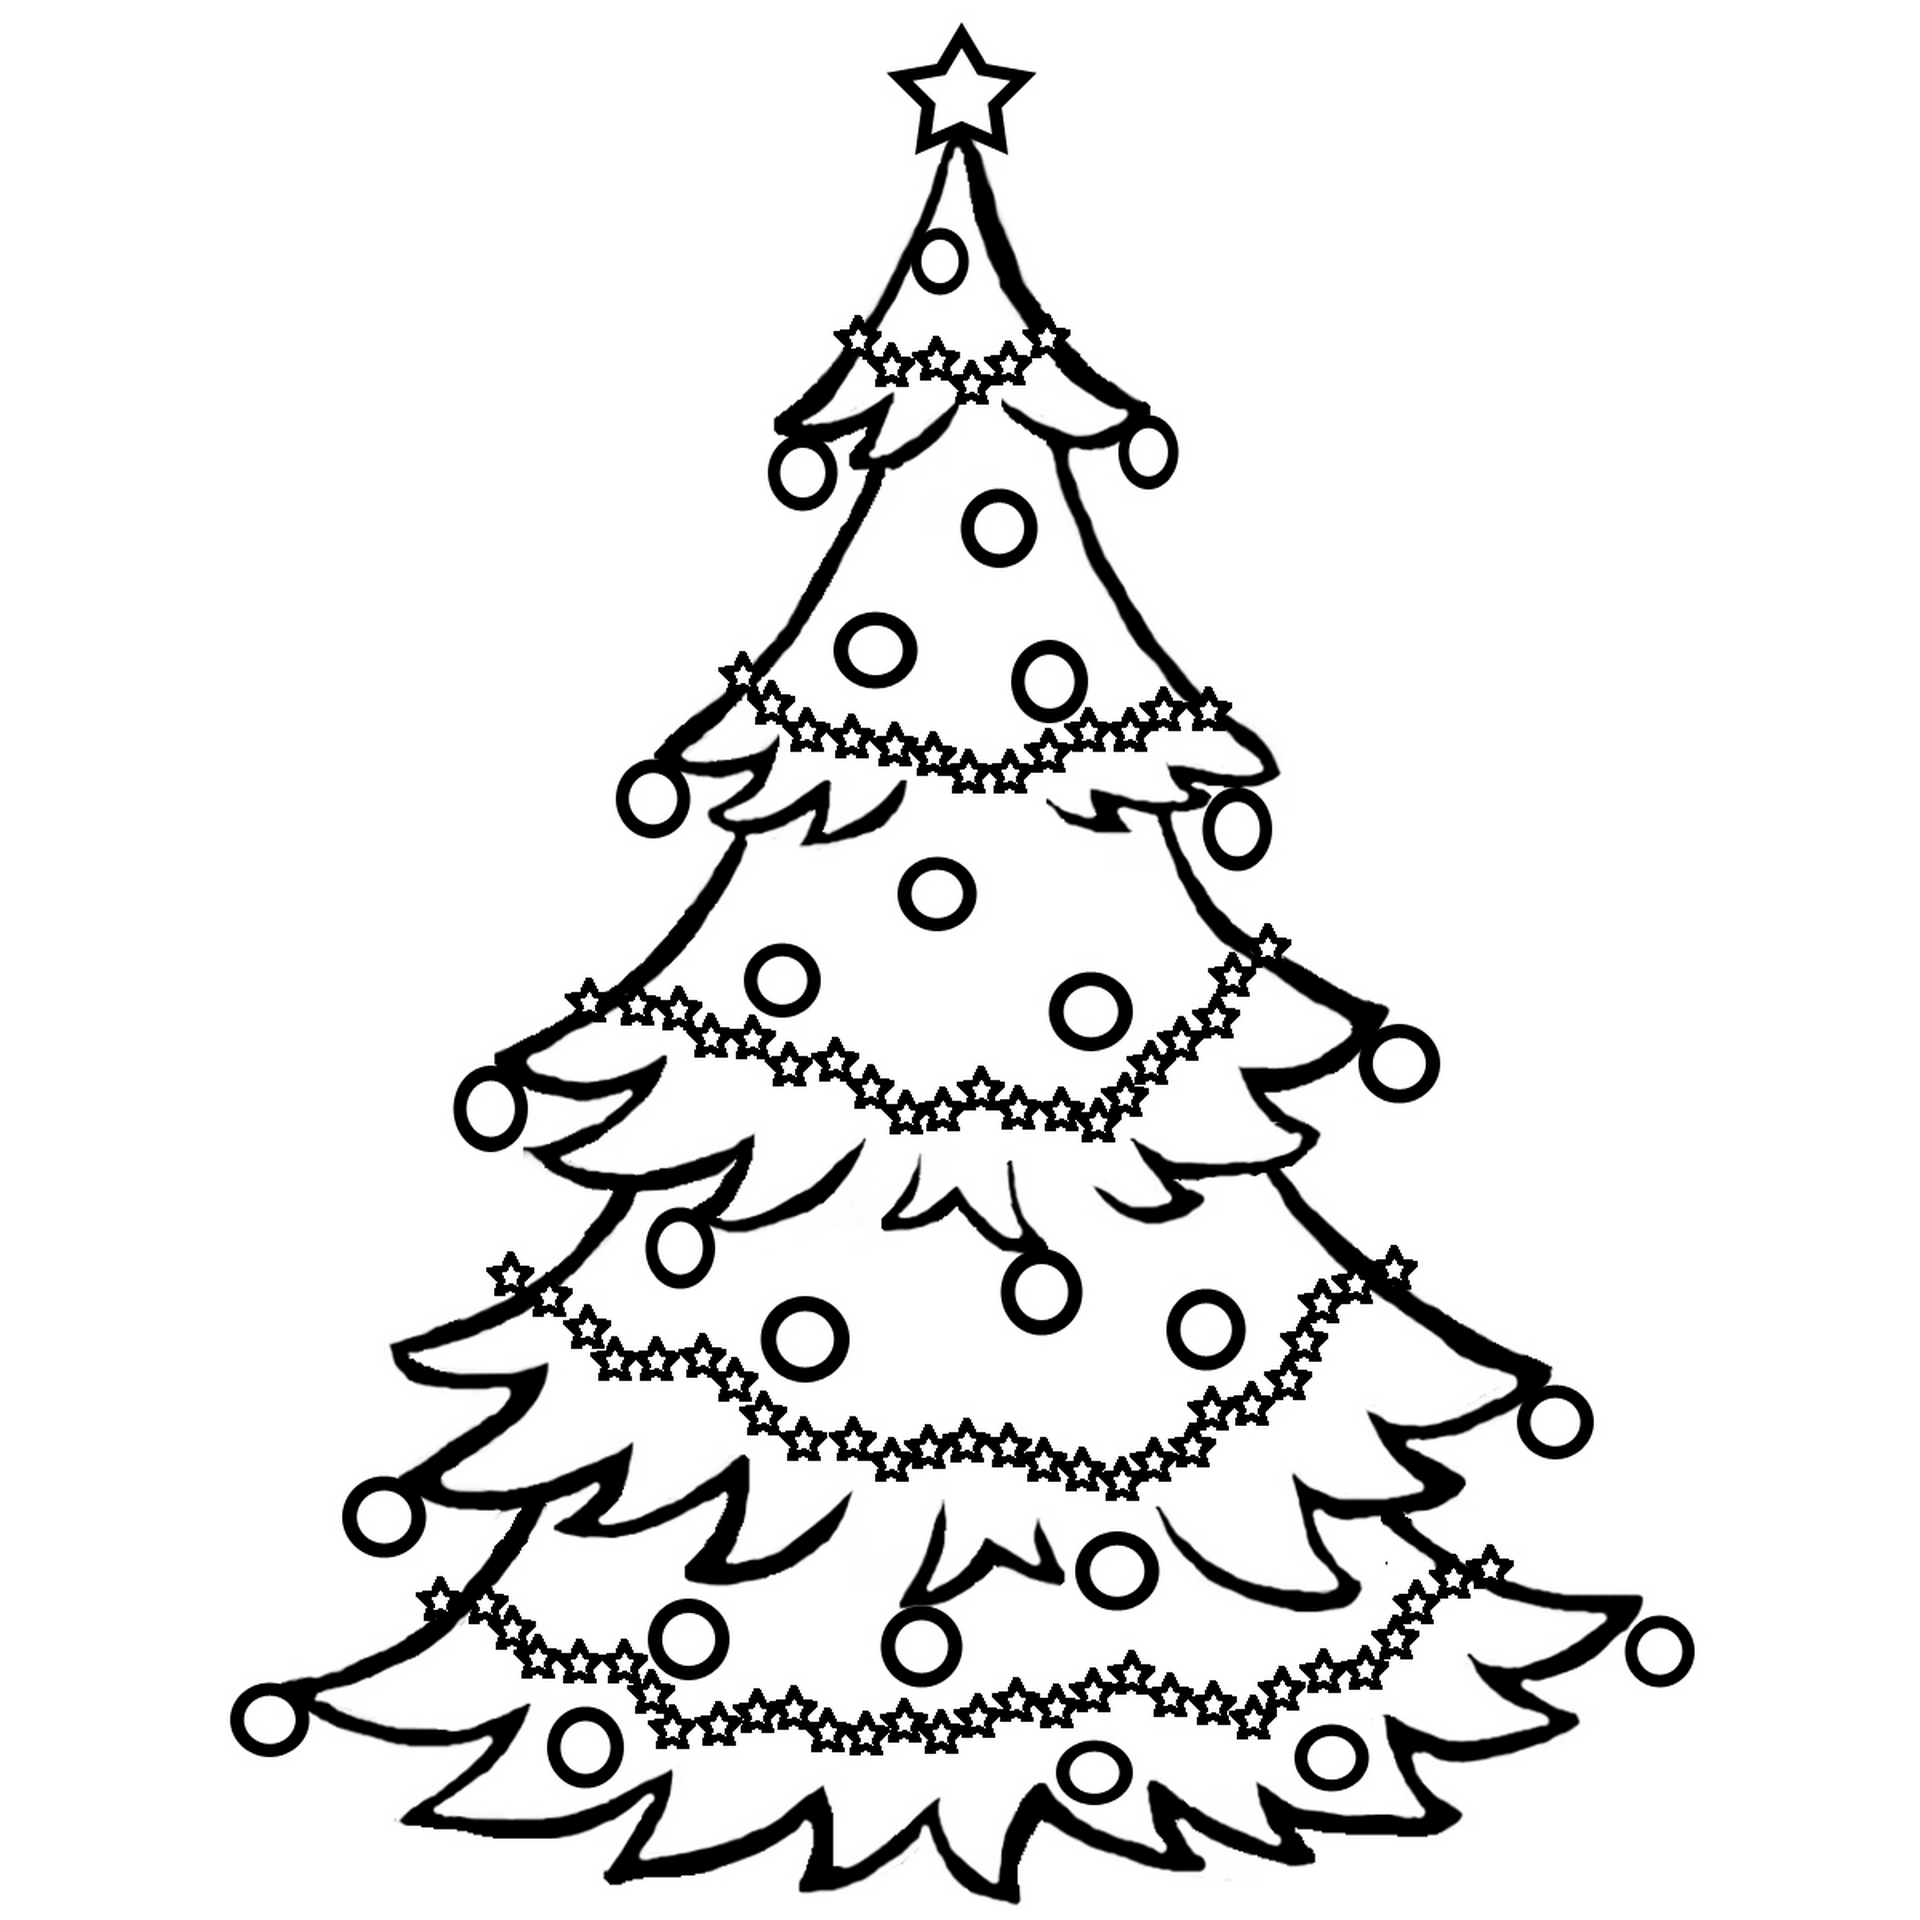 colouring pages christmas tree free printable christmas tree coloring pages for kids christmas colouring tree pages